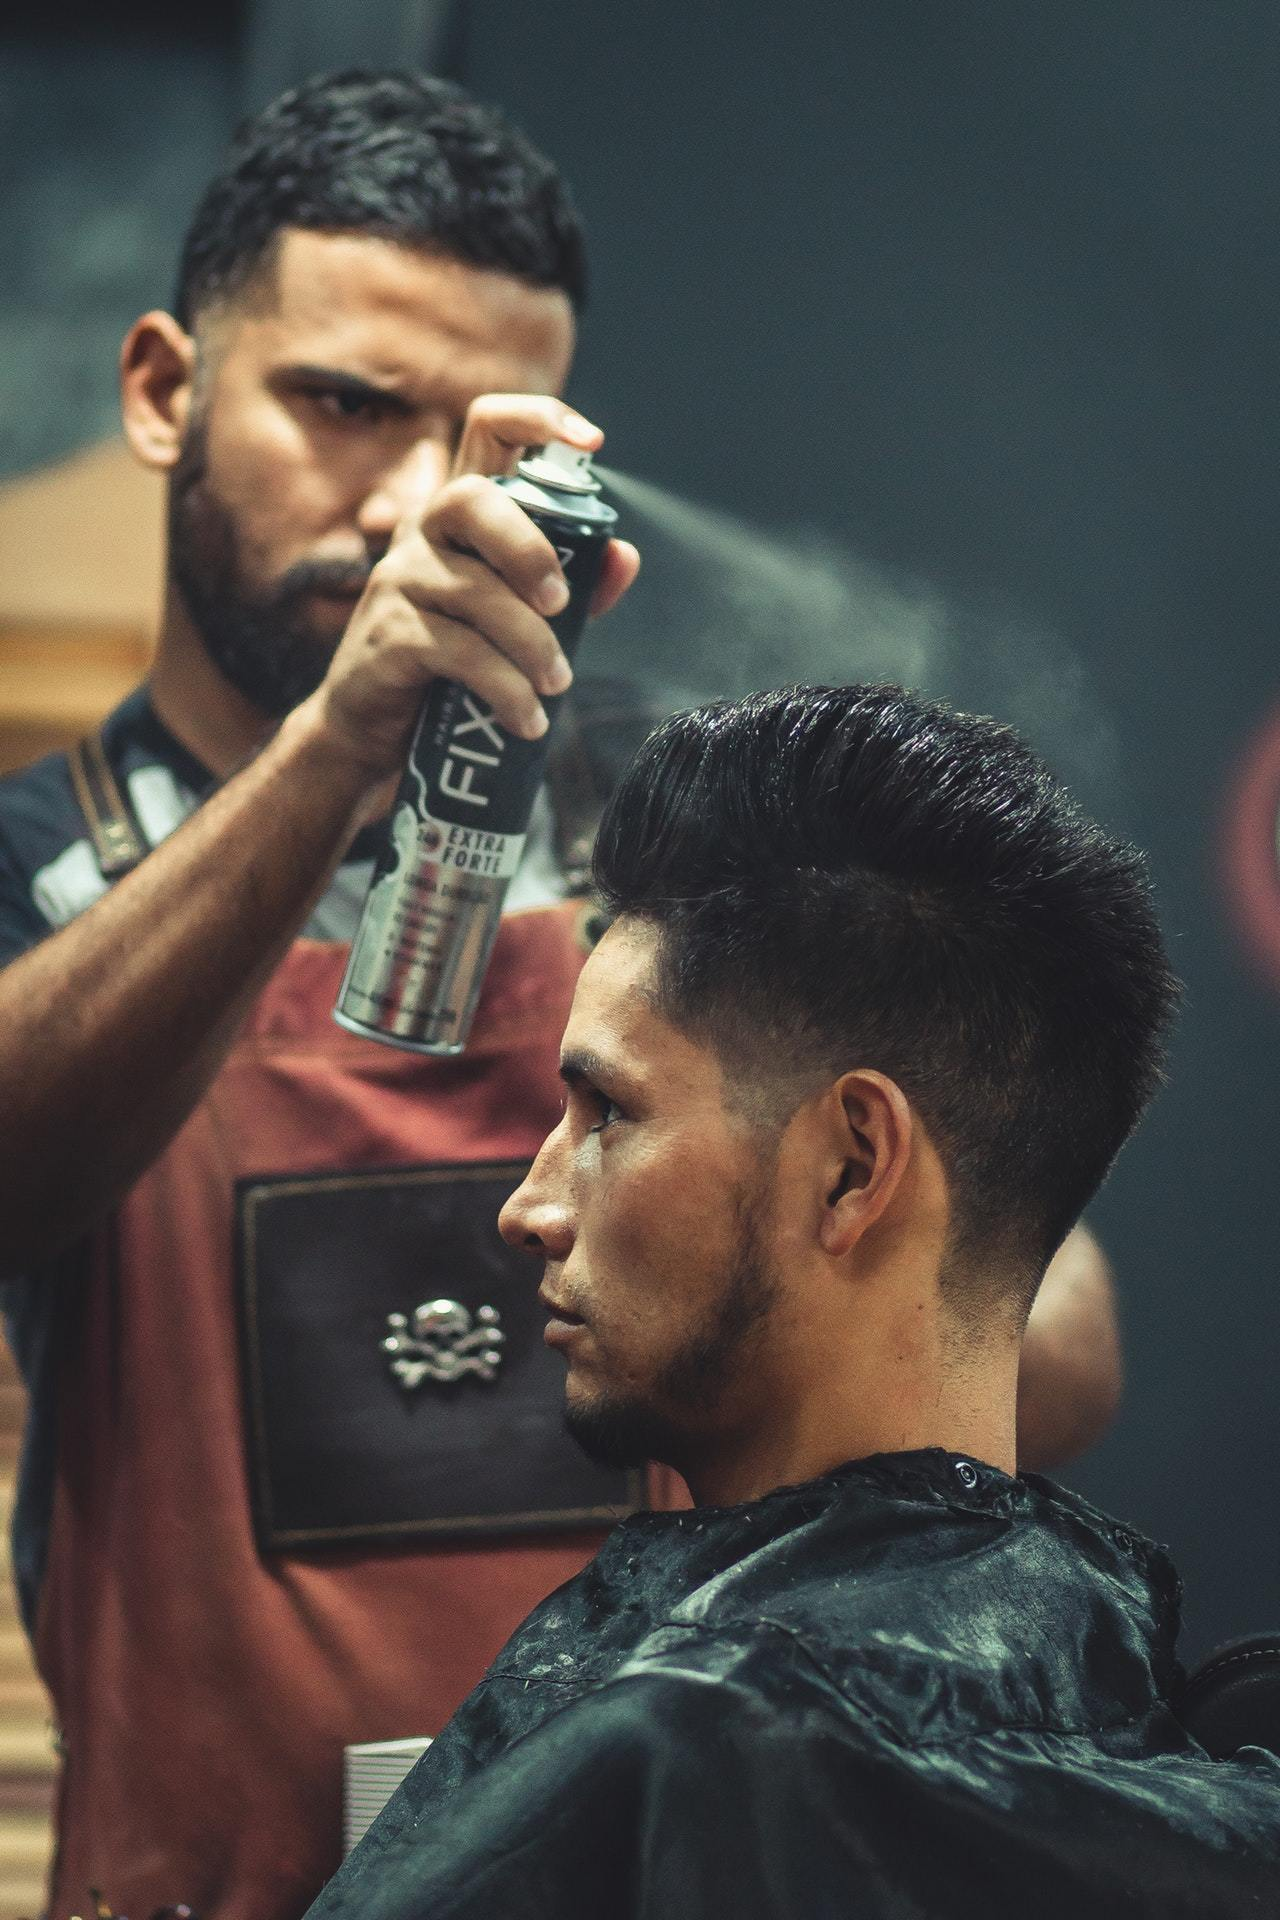 a man spraying hair / beard thickener sprays